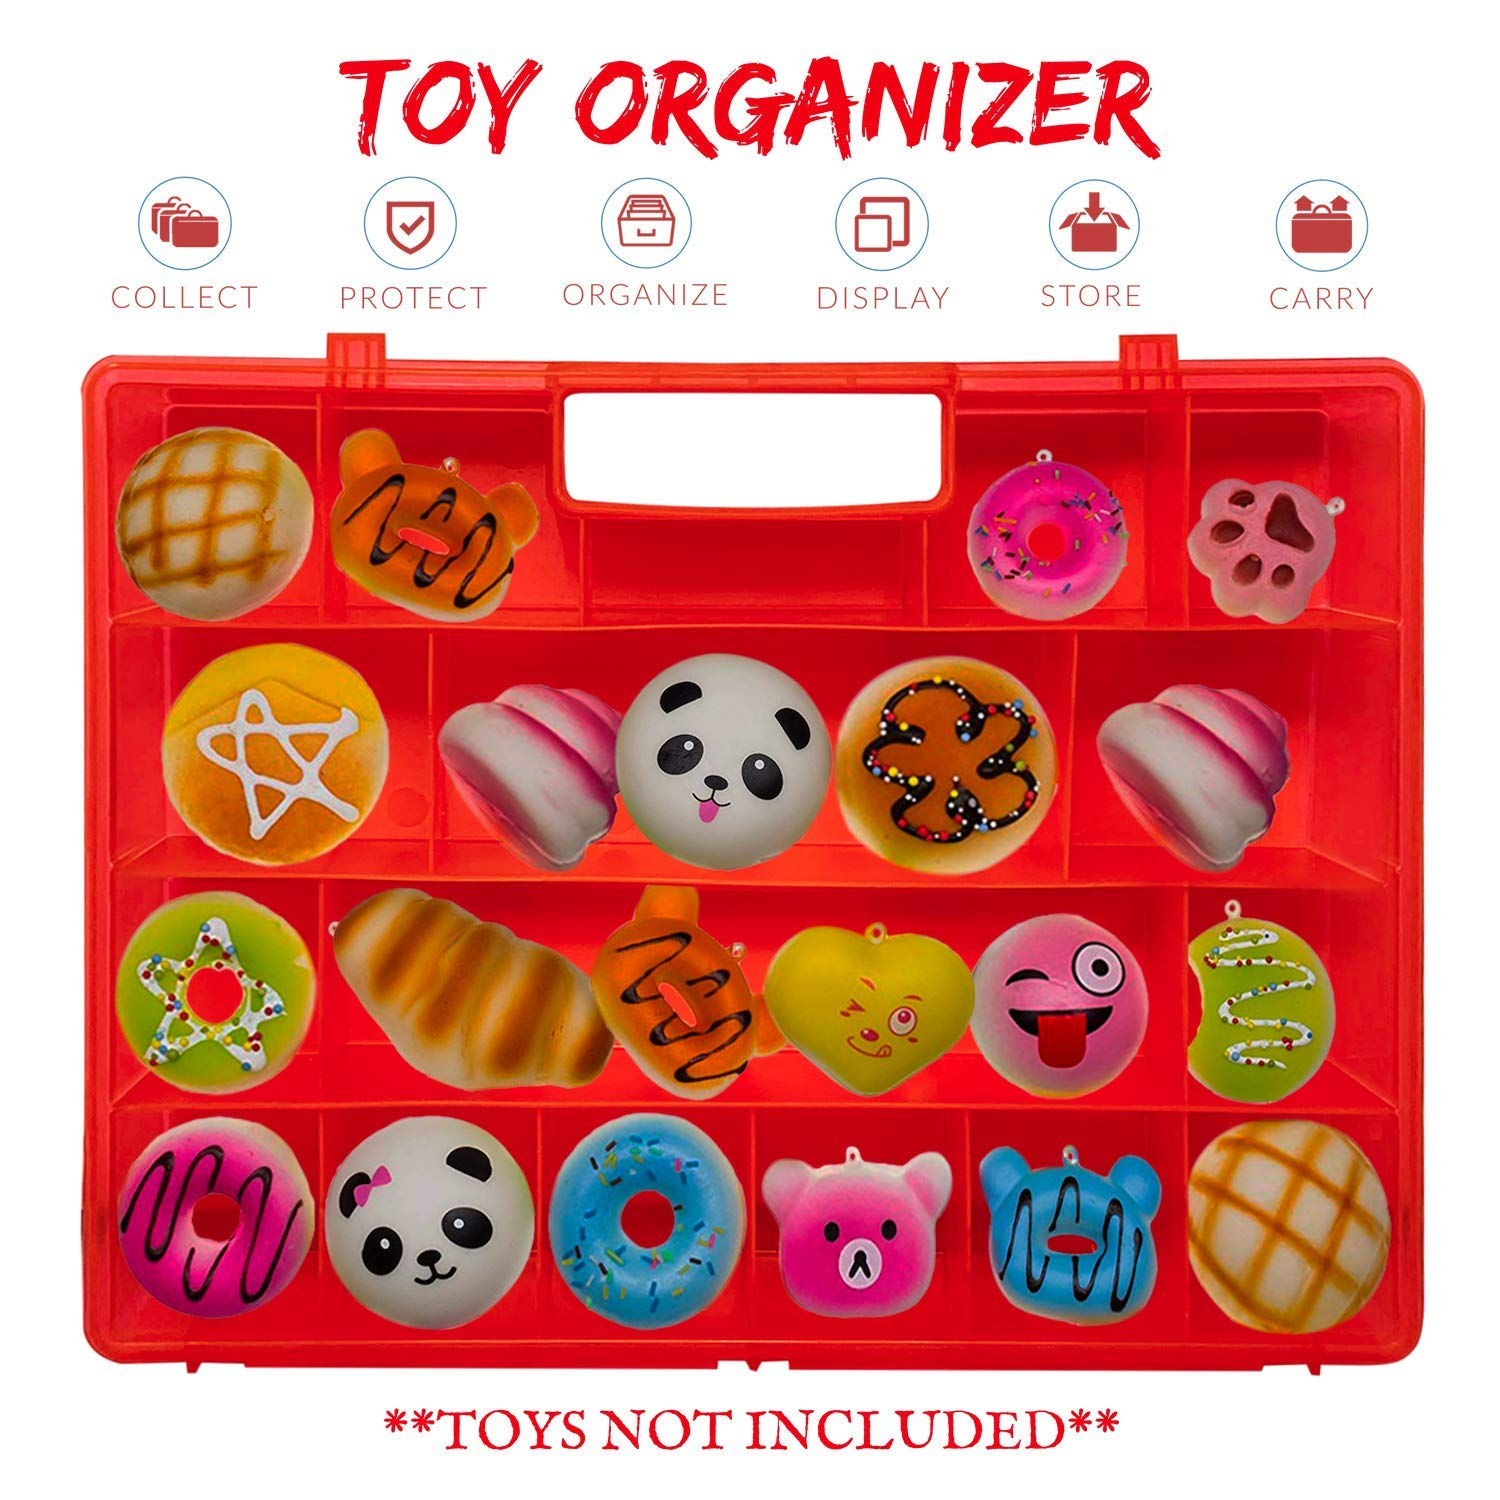 Newly Designed Kid-Friendly Compatible with Squishies Life Made Better Tougher /& Longer-Lasting Red Toy Storage Box Stronger All-in-One Handle Made